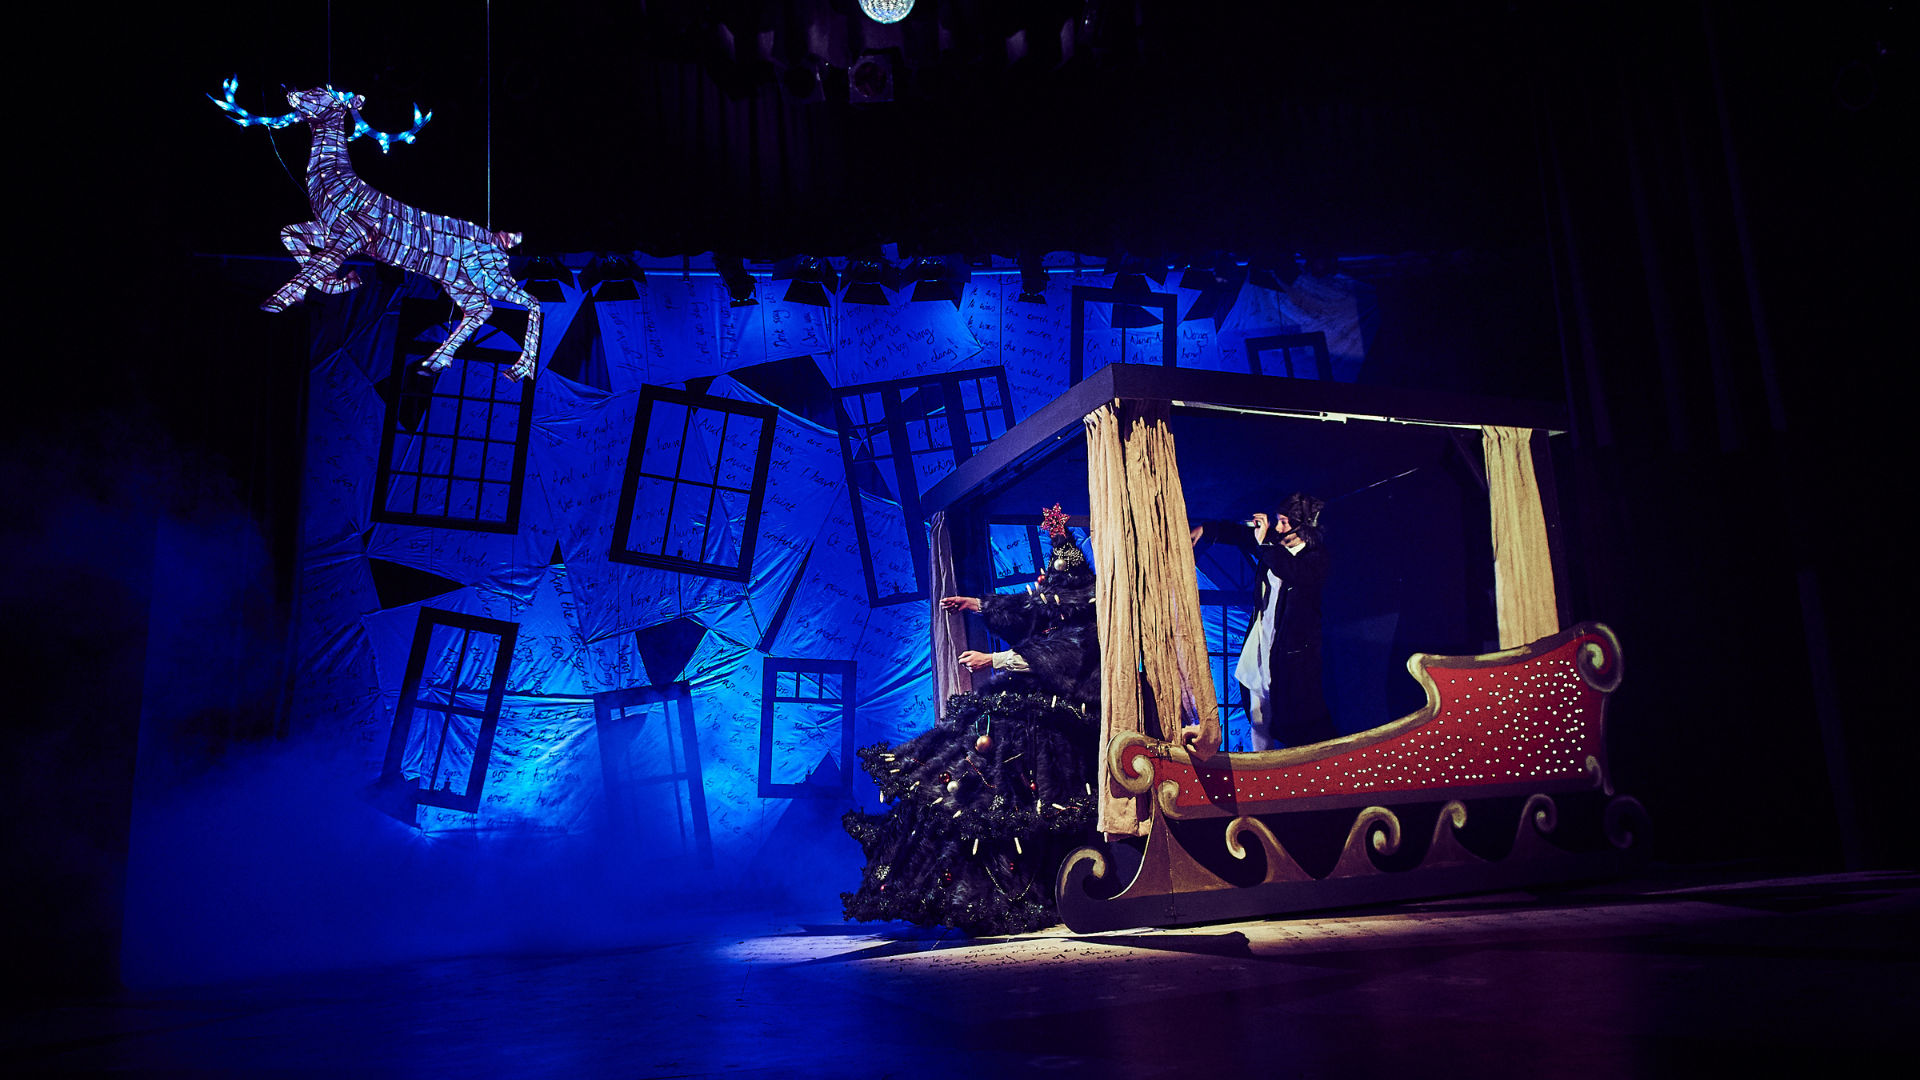 A Christmas Carol production shot: on stage there is a large sleigh with a Christmas tree. In the air there is a reindeer covered in lights